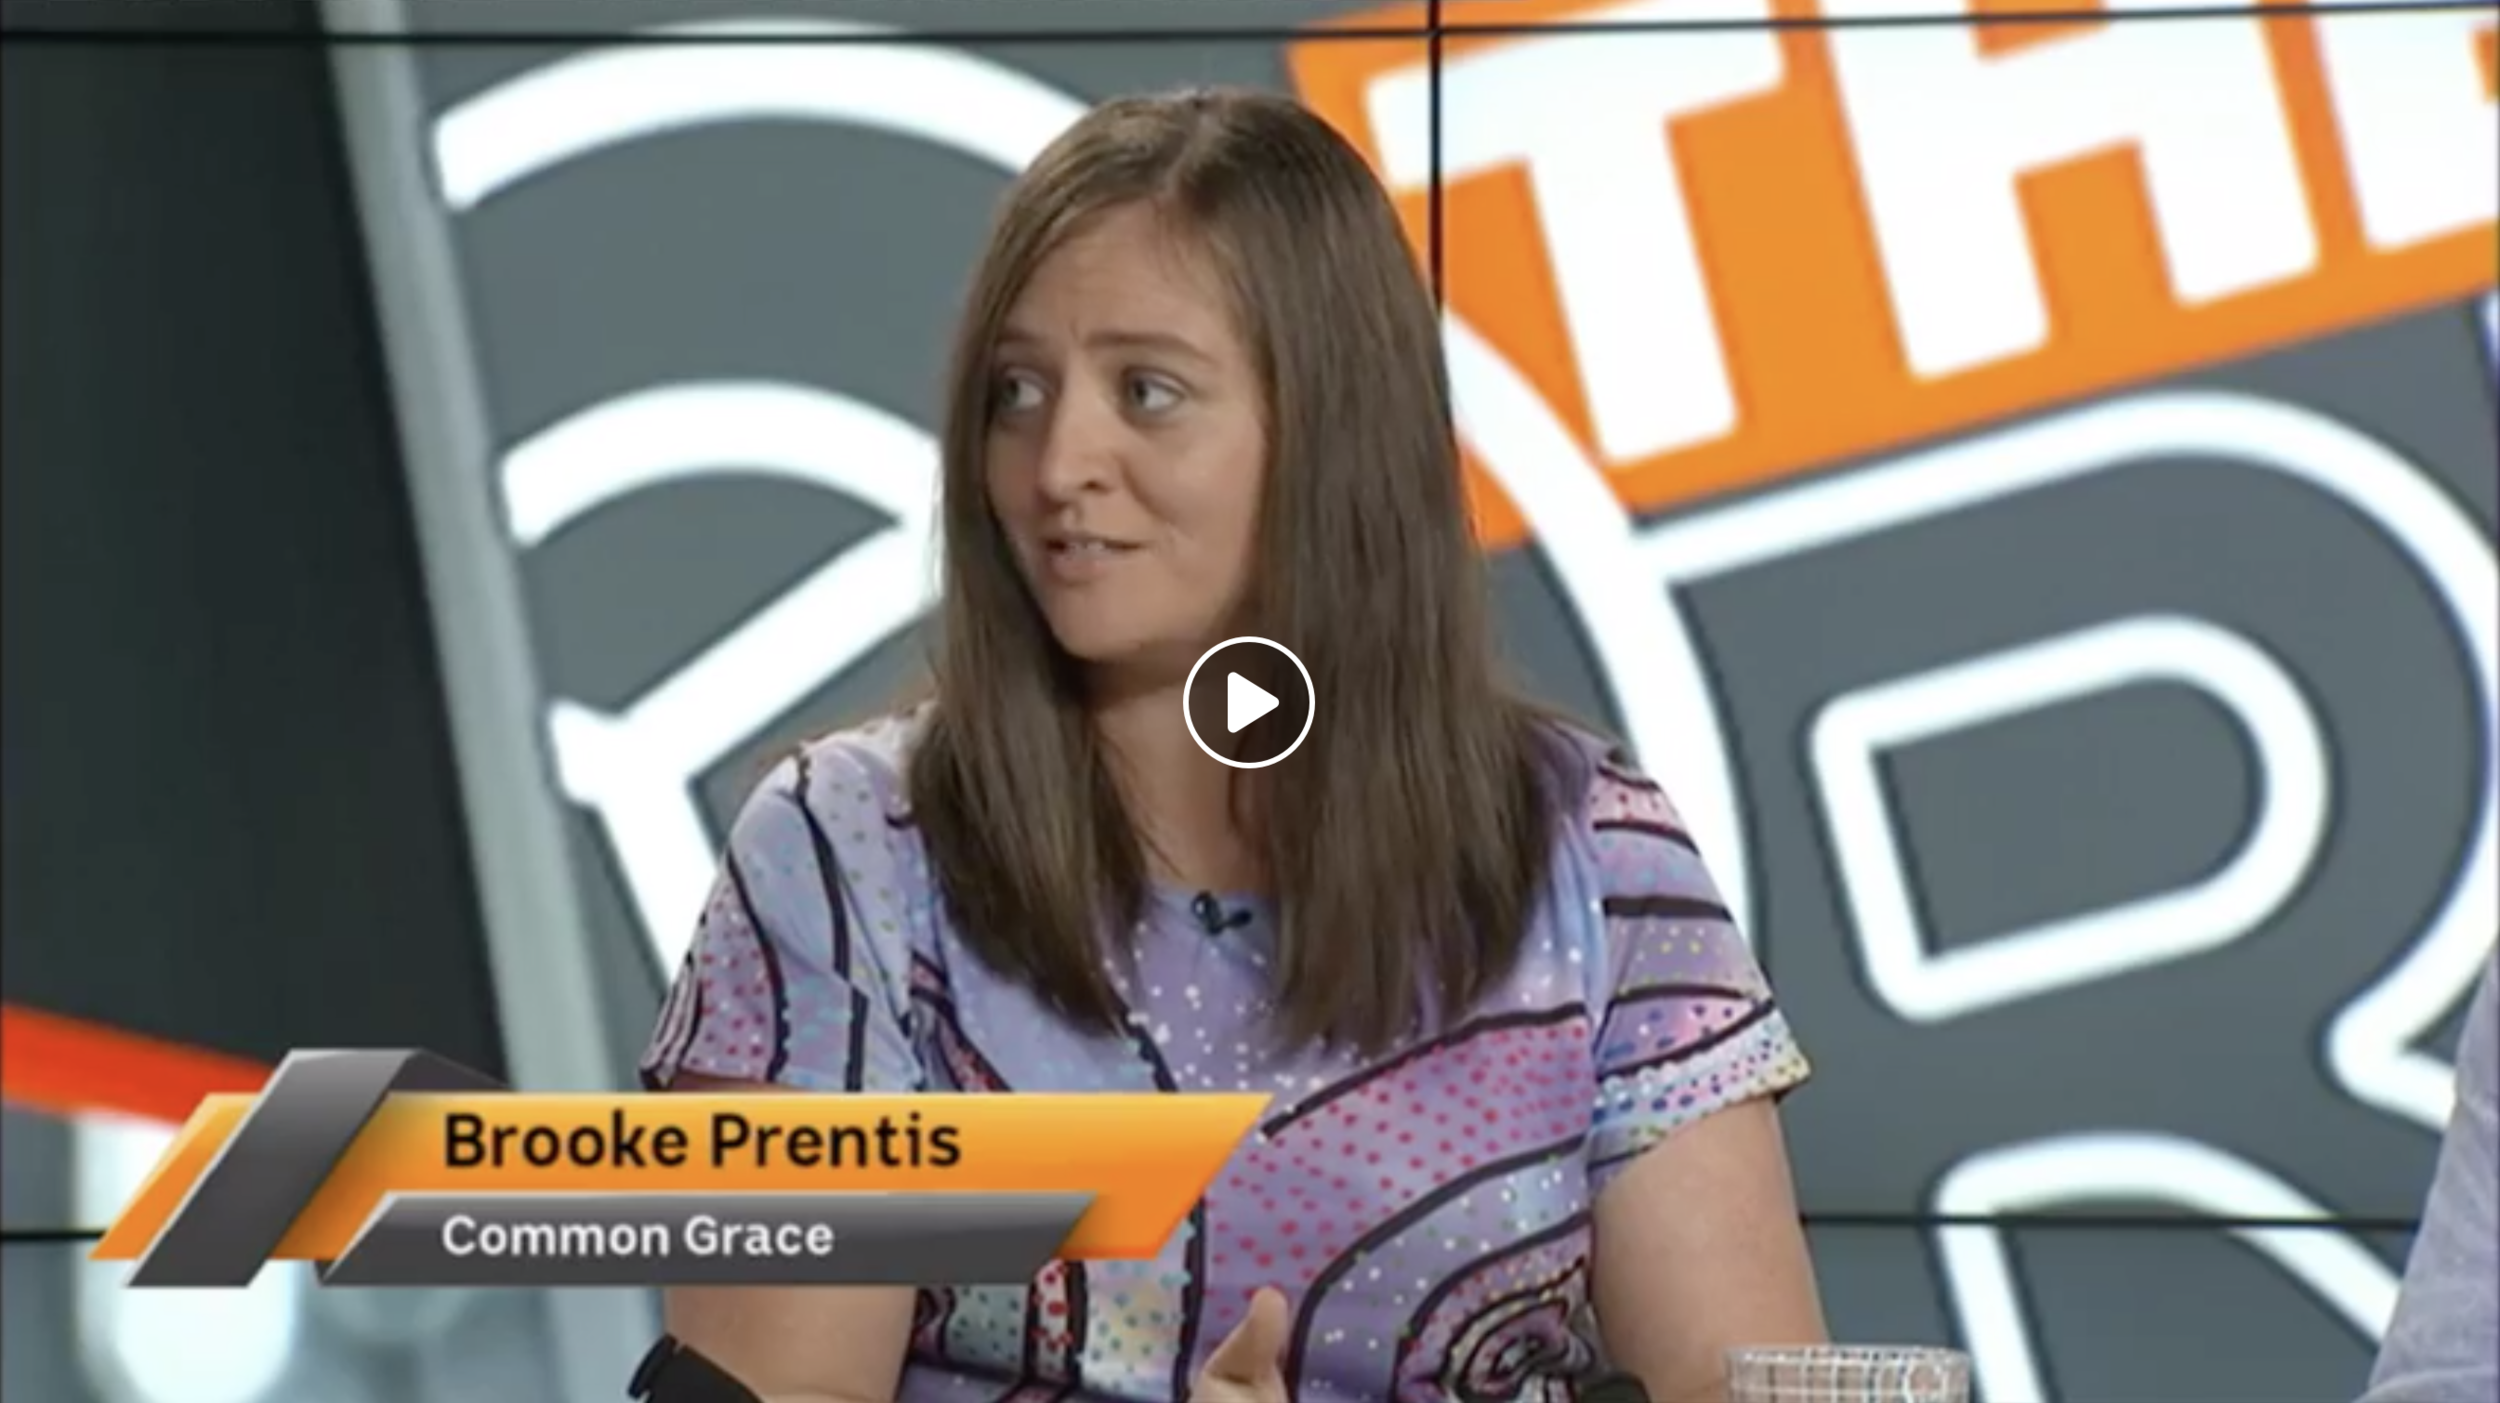 The Drum, Friday March 29      ABC The Drum   29 March, 2019  Brooke Prentis, 2019 ADM Senior Fellow made her second appearance on ABC's The Drum.